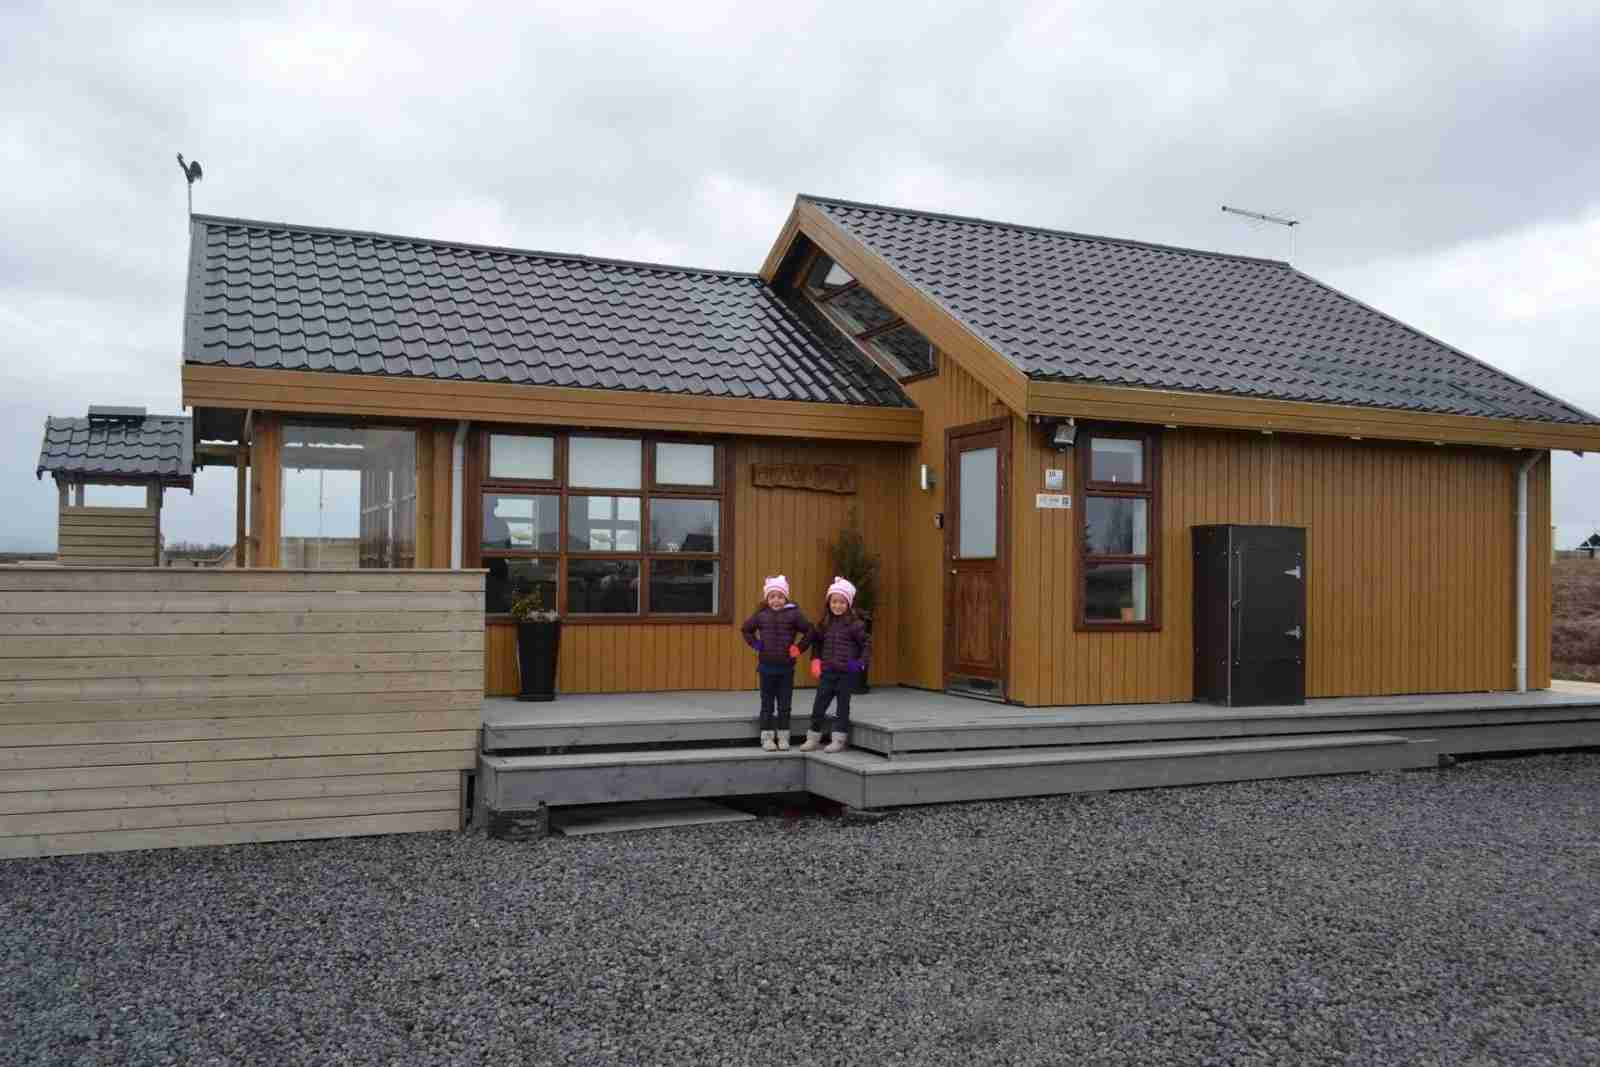 Our family-friendly Icelandic Cabin on the Golden Circle route.